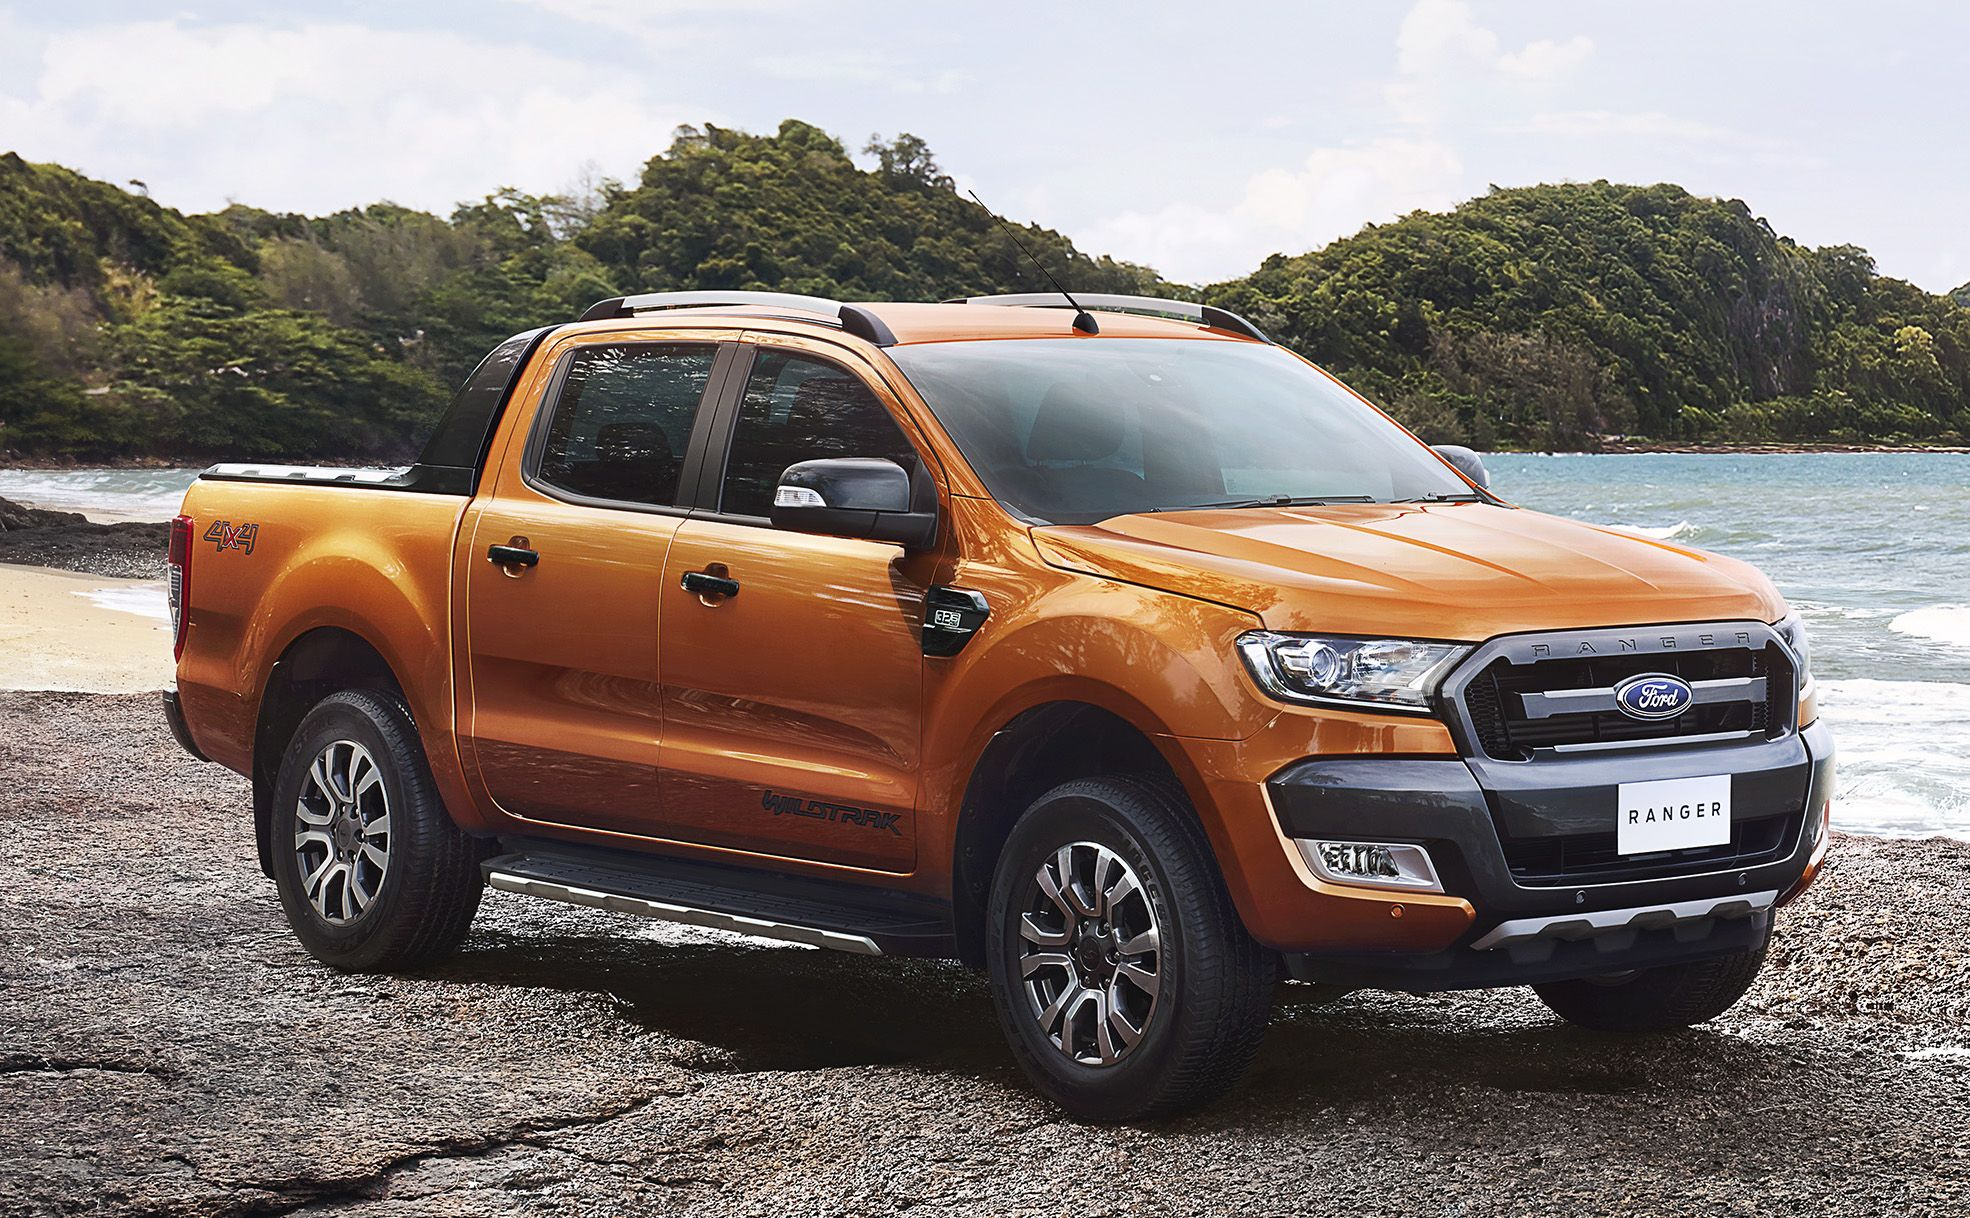 2015 Ford Ranger Wildtrak This Is The New Top Of The Line 2019